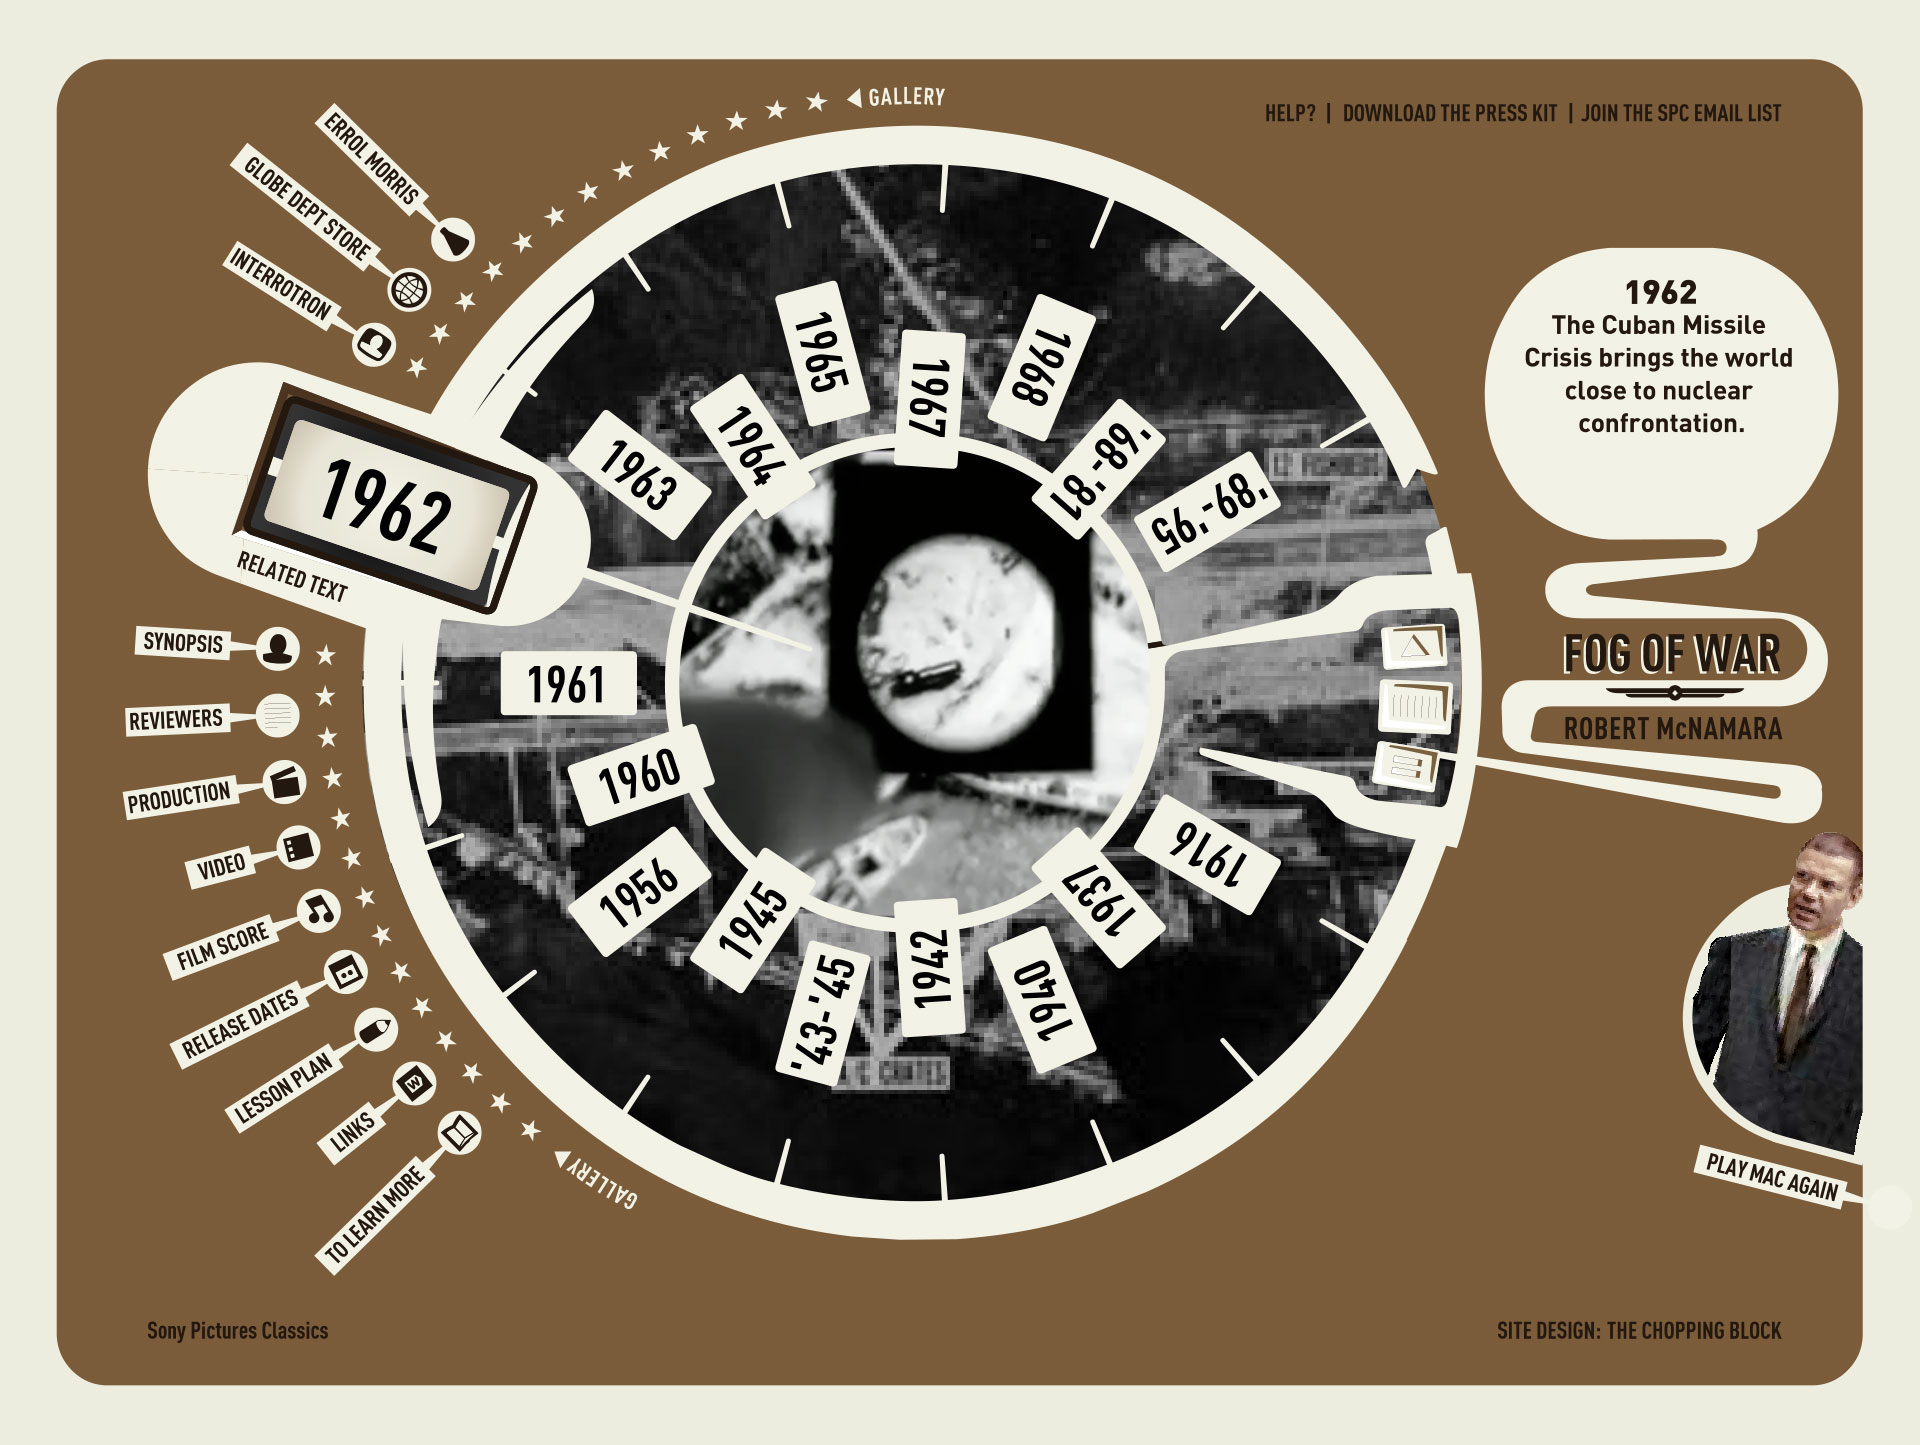 Timeline featuring the Cuban Missile Crisis.